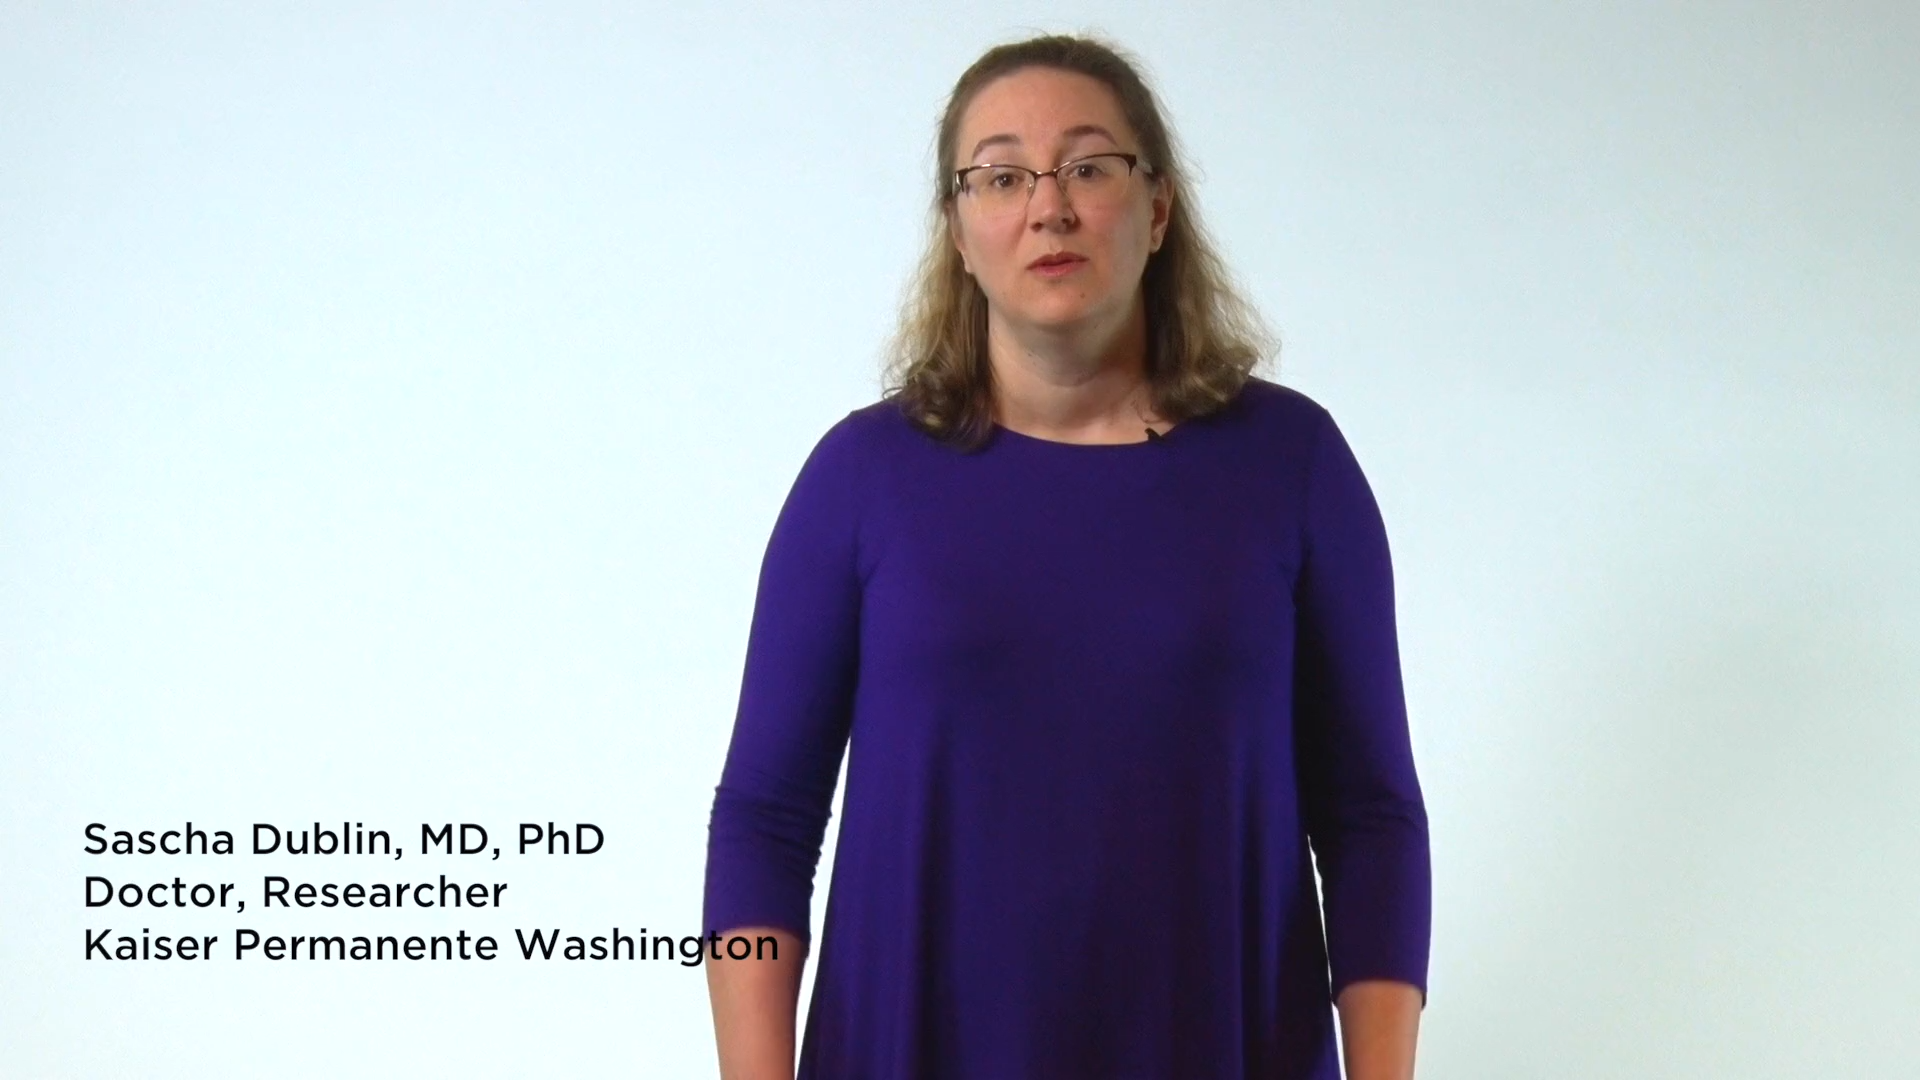 In This Short Video Dr Sascha Dublin Tells How Her Work As A